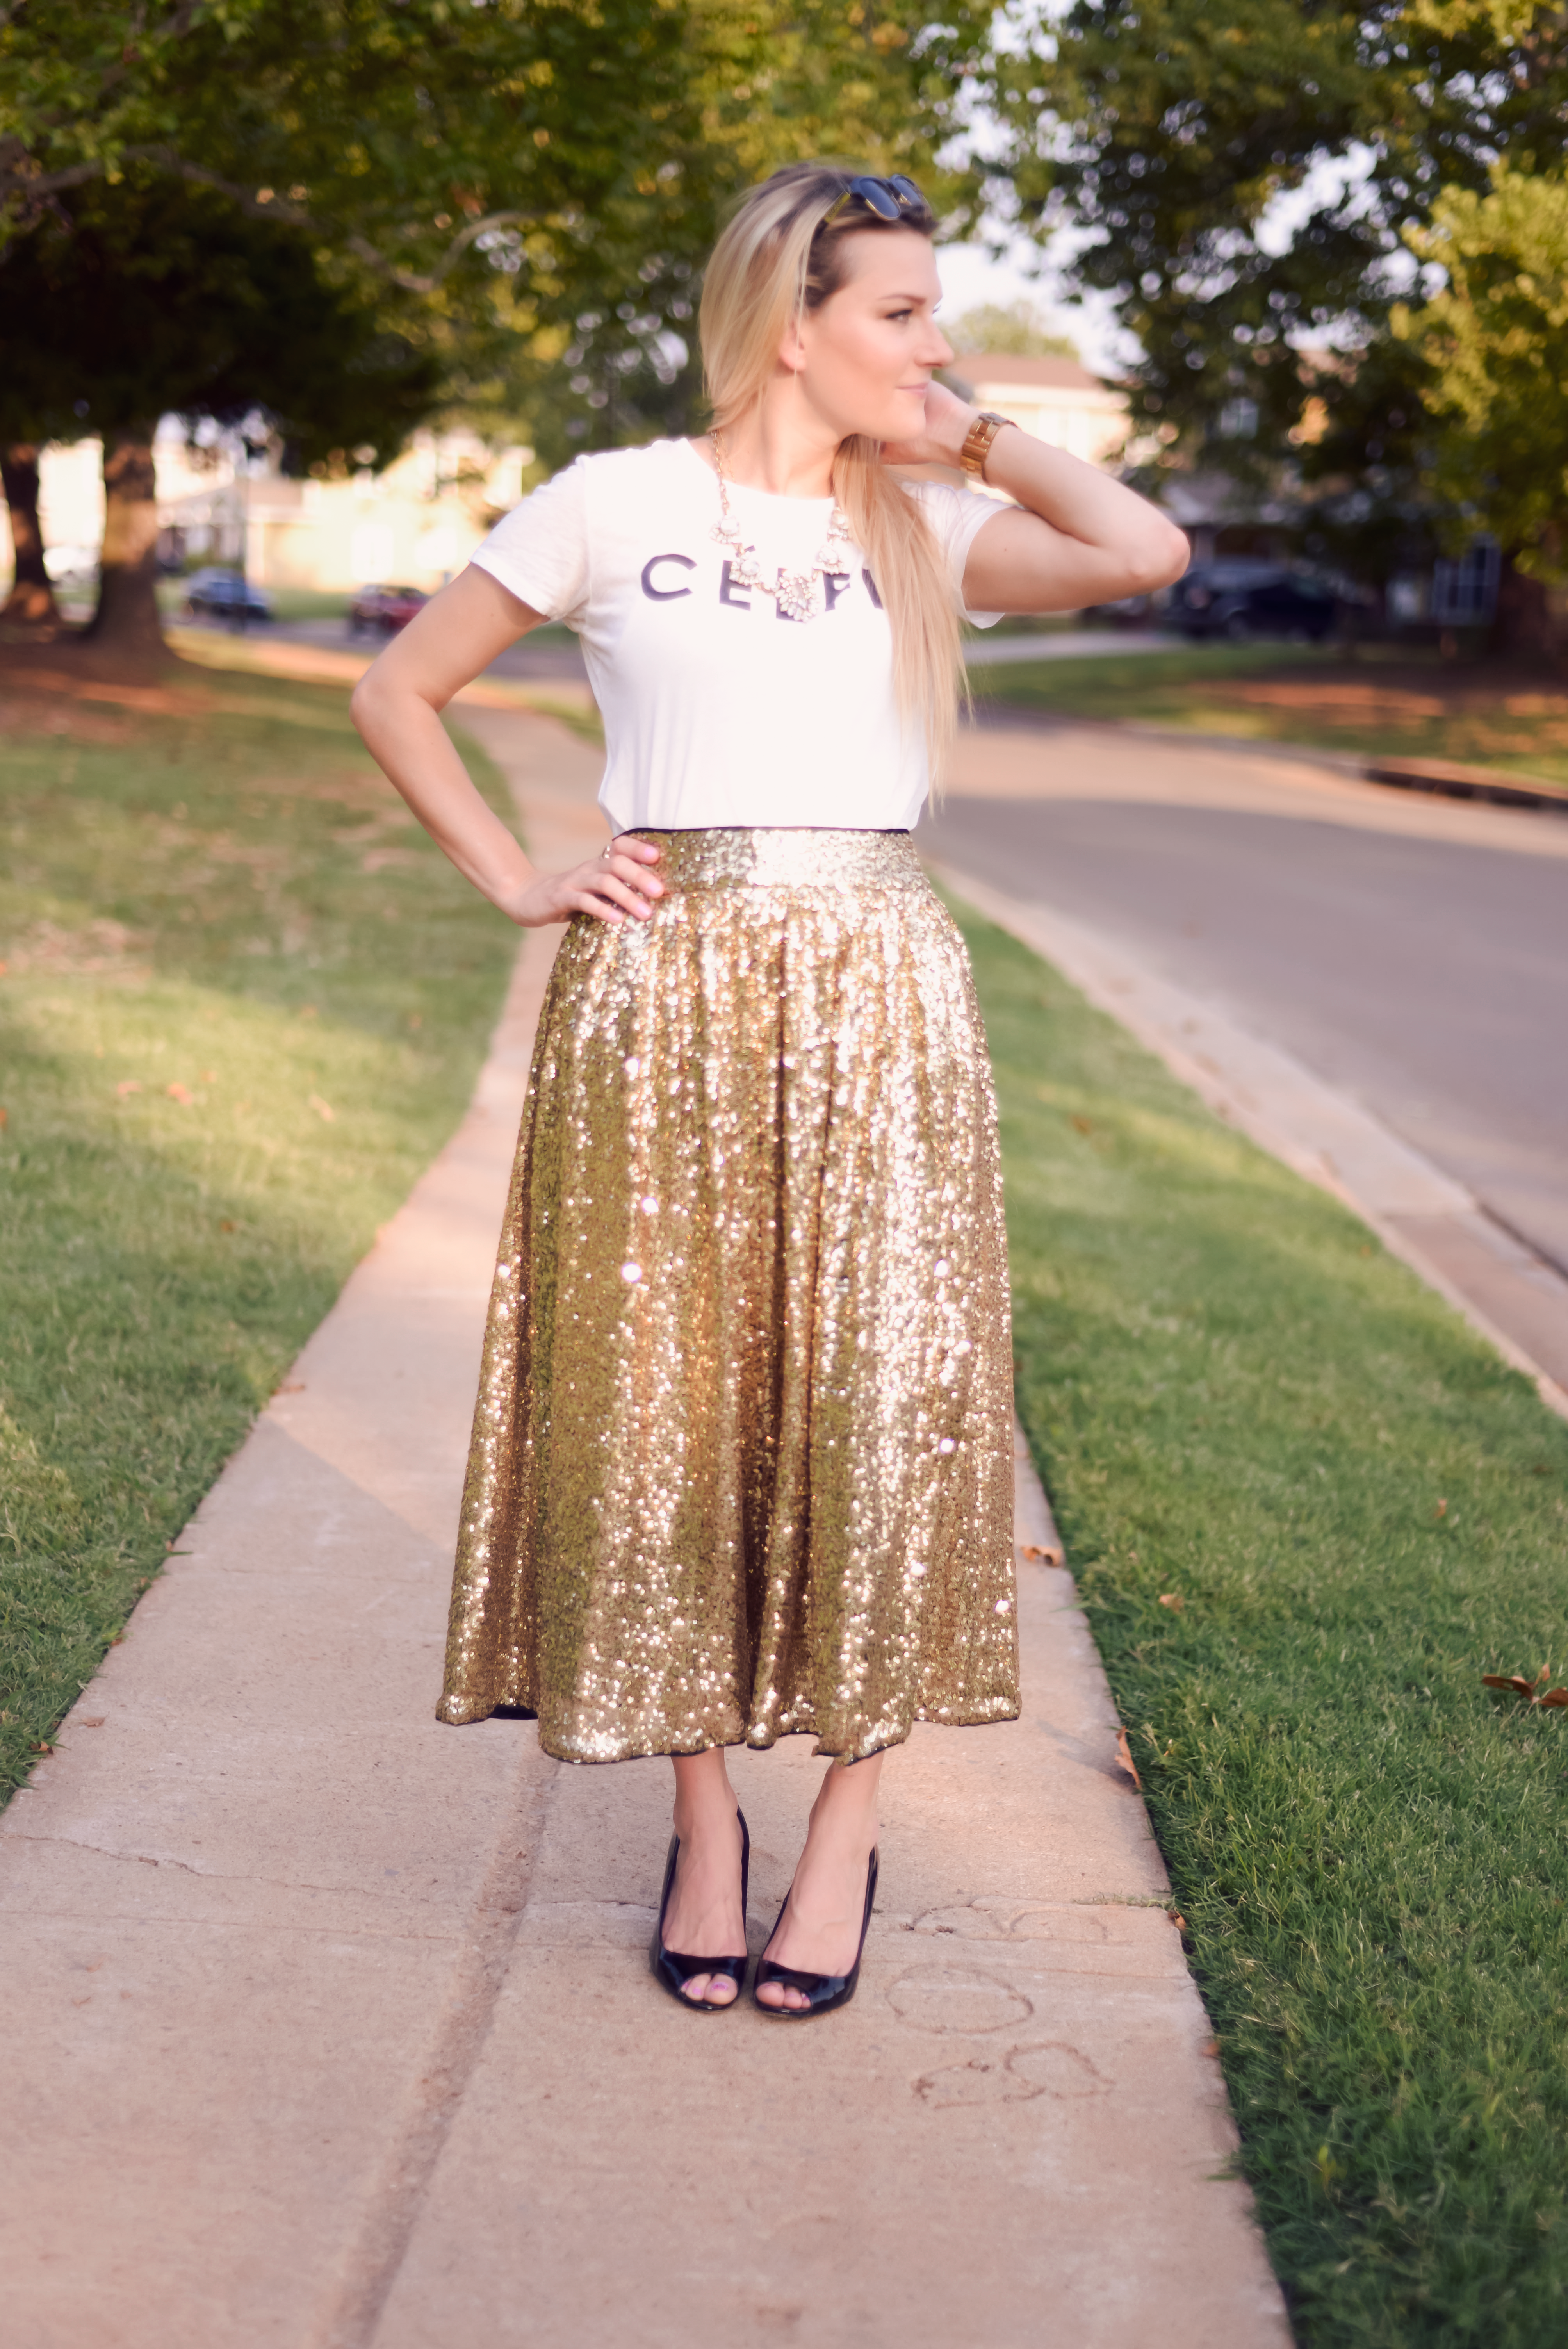 Glam Gold Sequin Midi Skirt ||  The Chic Blonde